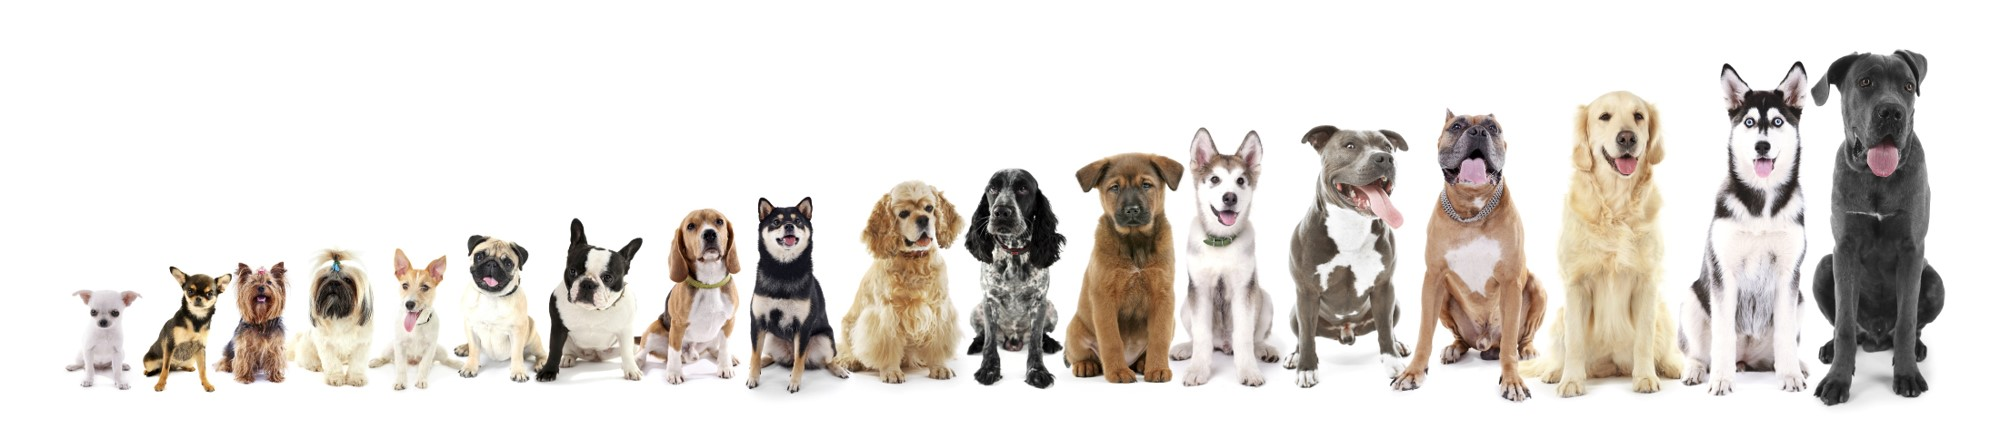 line-of-dogs-smaller.jpg